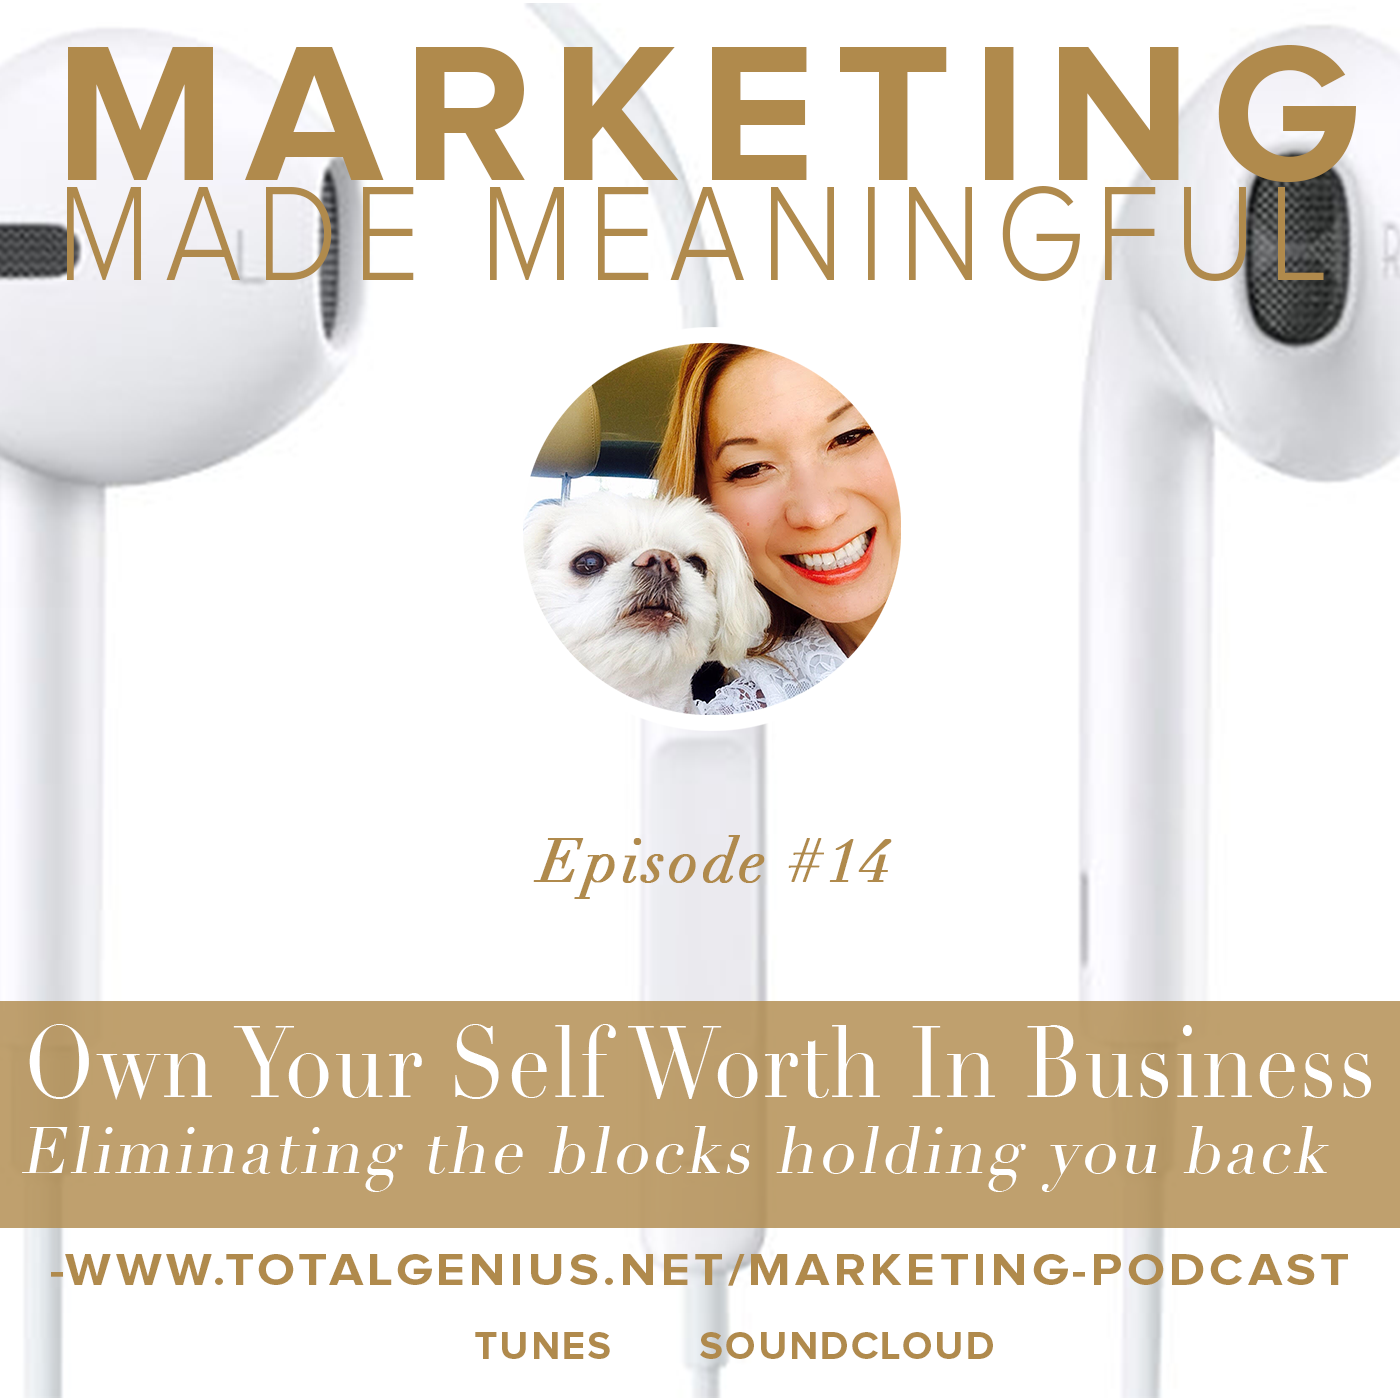 Marketing Made Meaningful Podcast #selfworth